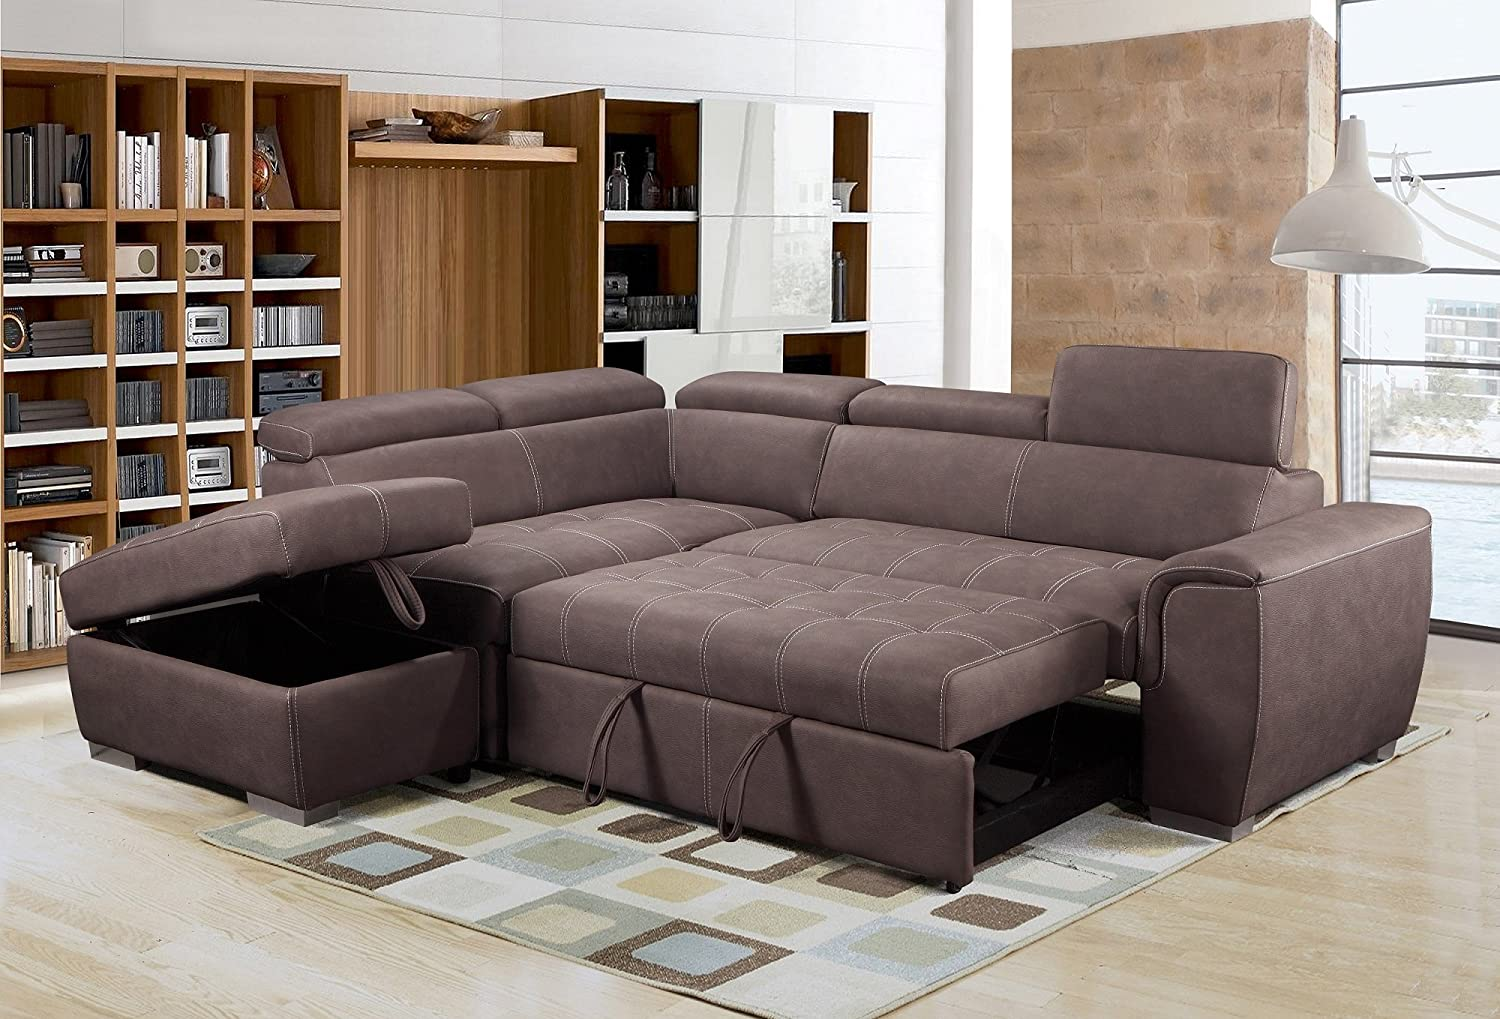 Rienzo Large Brown Fabric Suede Corner Sofa Bed With Tilting Headrest And Storage Ottoman (Left Hand Facing): Amazon.co.uk: Kitchen & Home